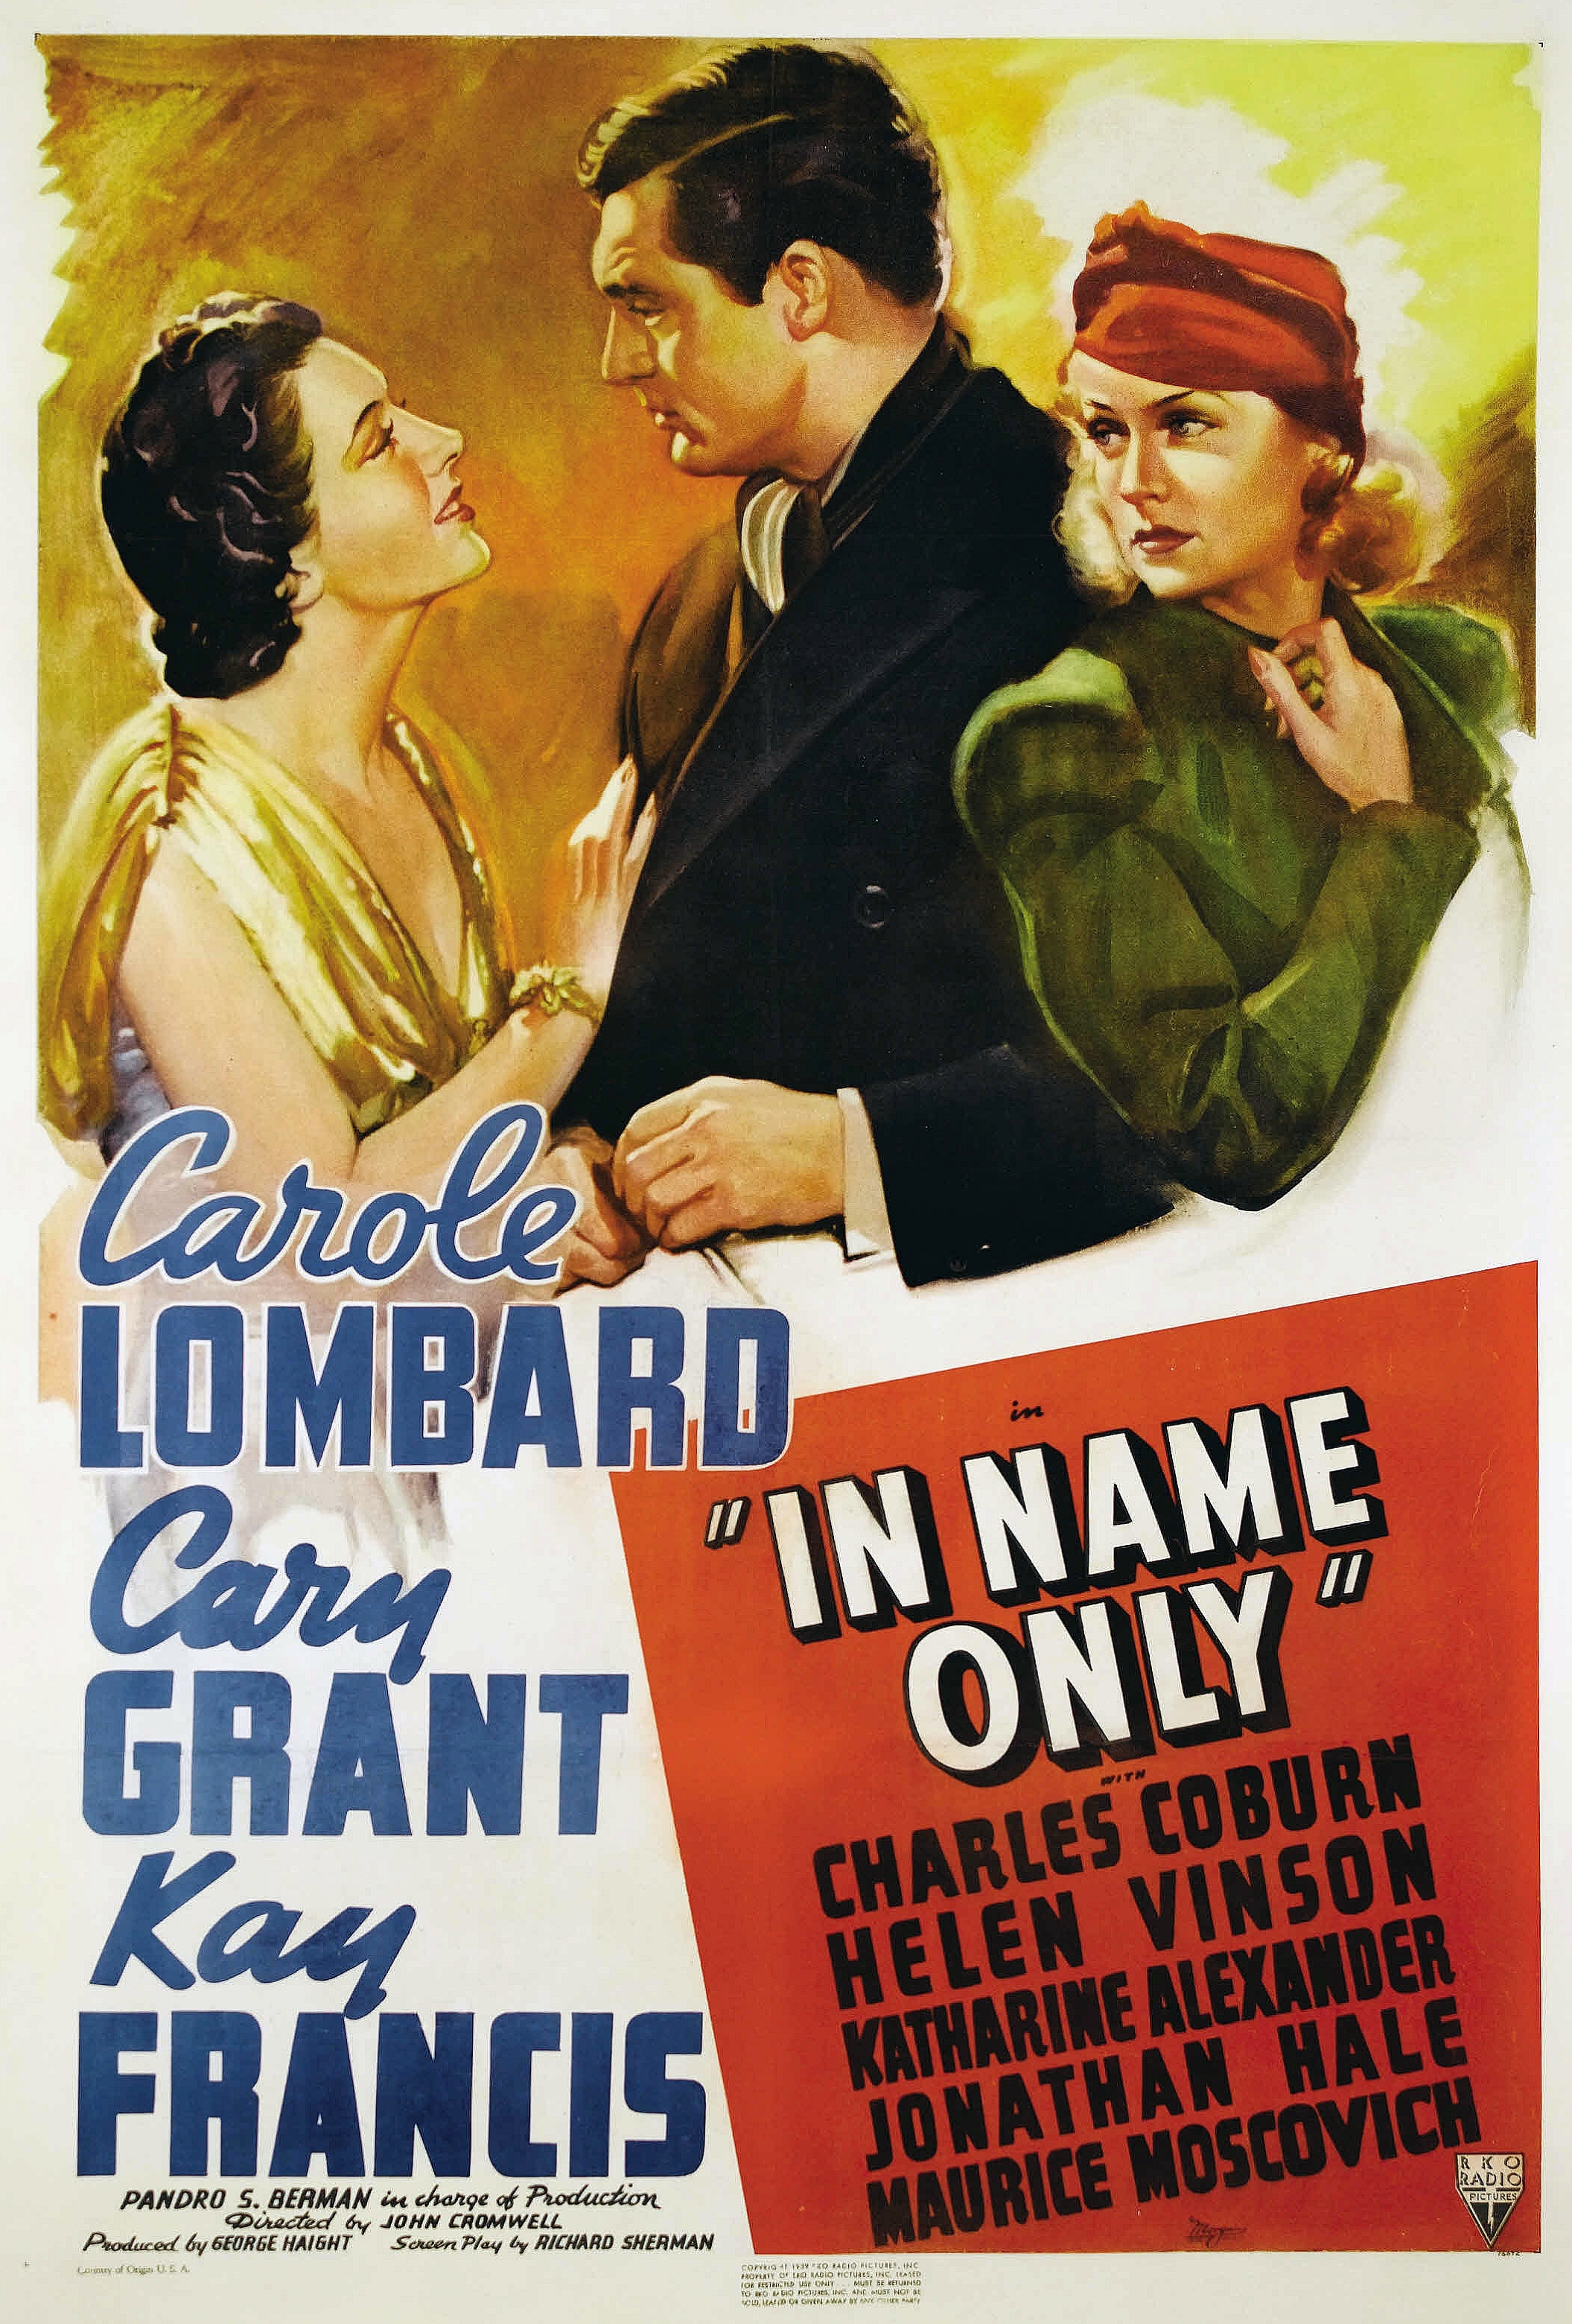 carole lombard in name only poster 01b